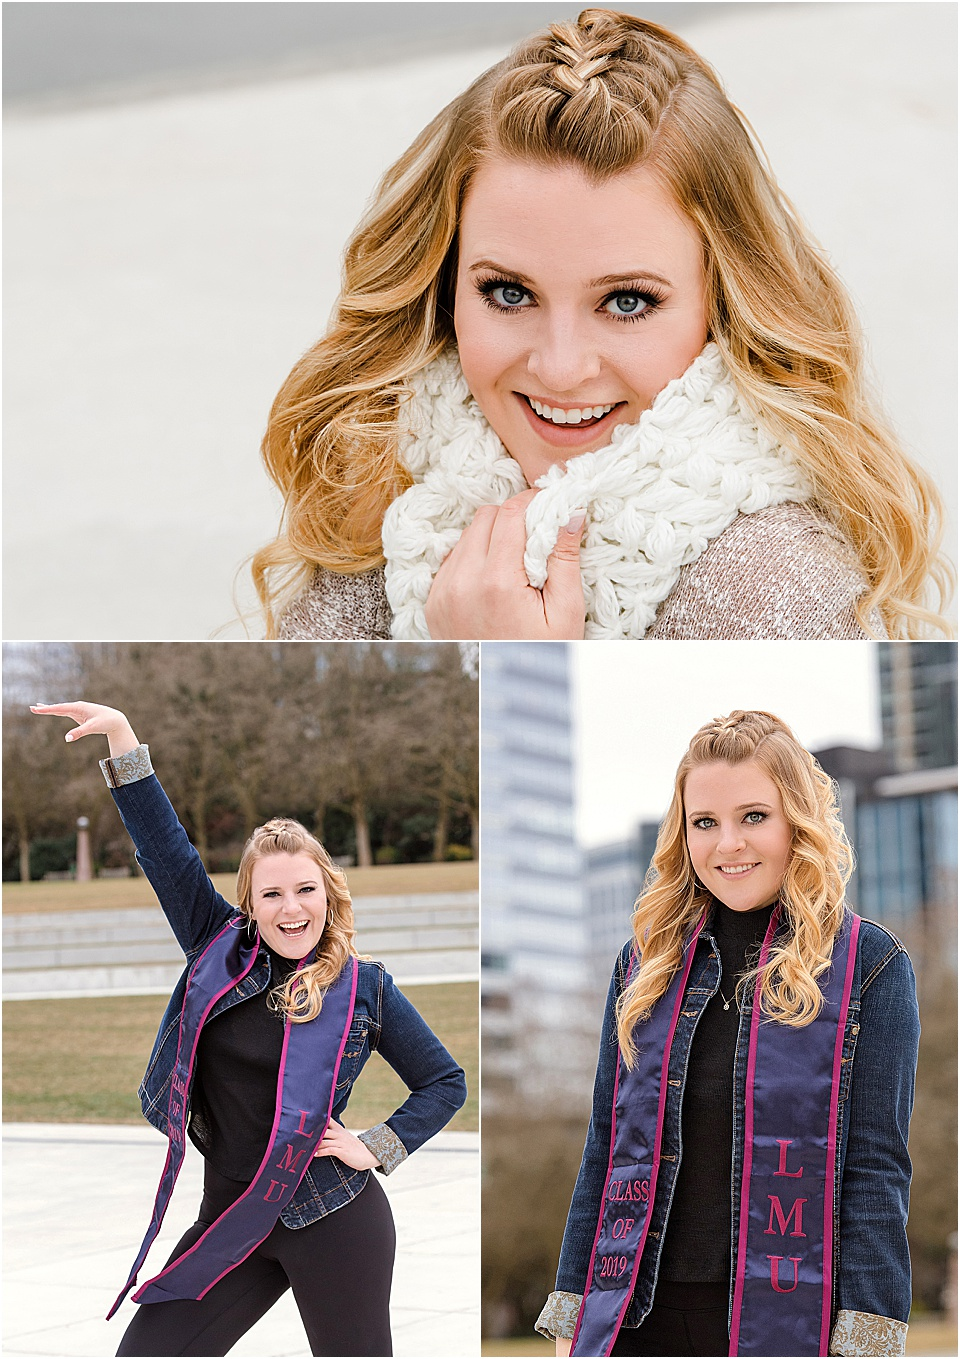 College graduation photos in    Bellevue Park    | pc:    StudioBportraits.com     (Fun Fact: We photographed Sabrina's high school senior pictures 4 years ago!)